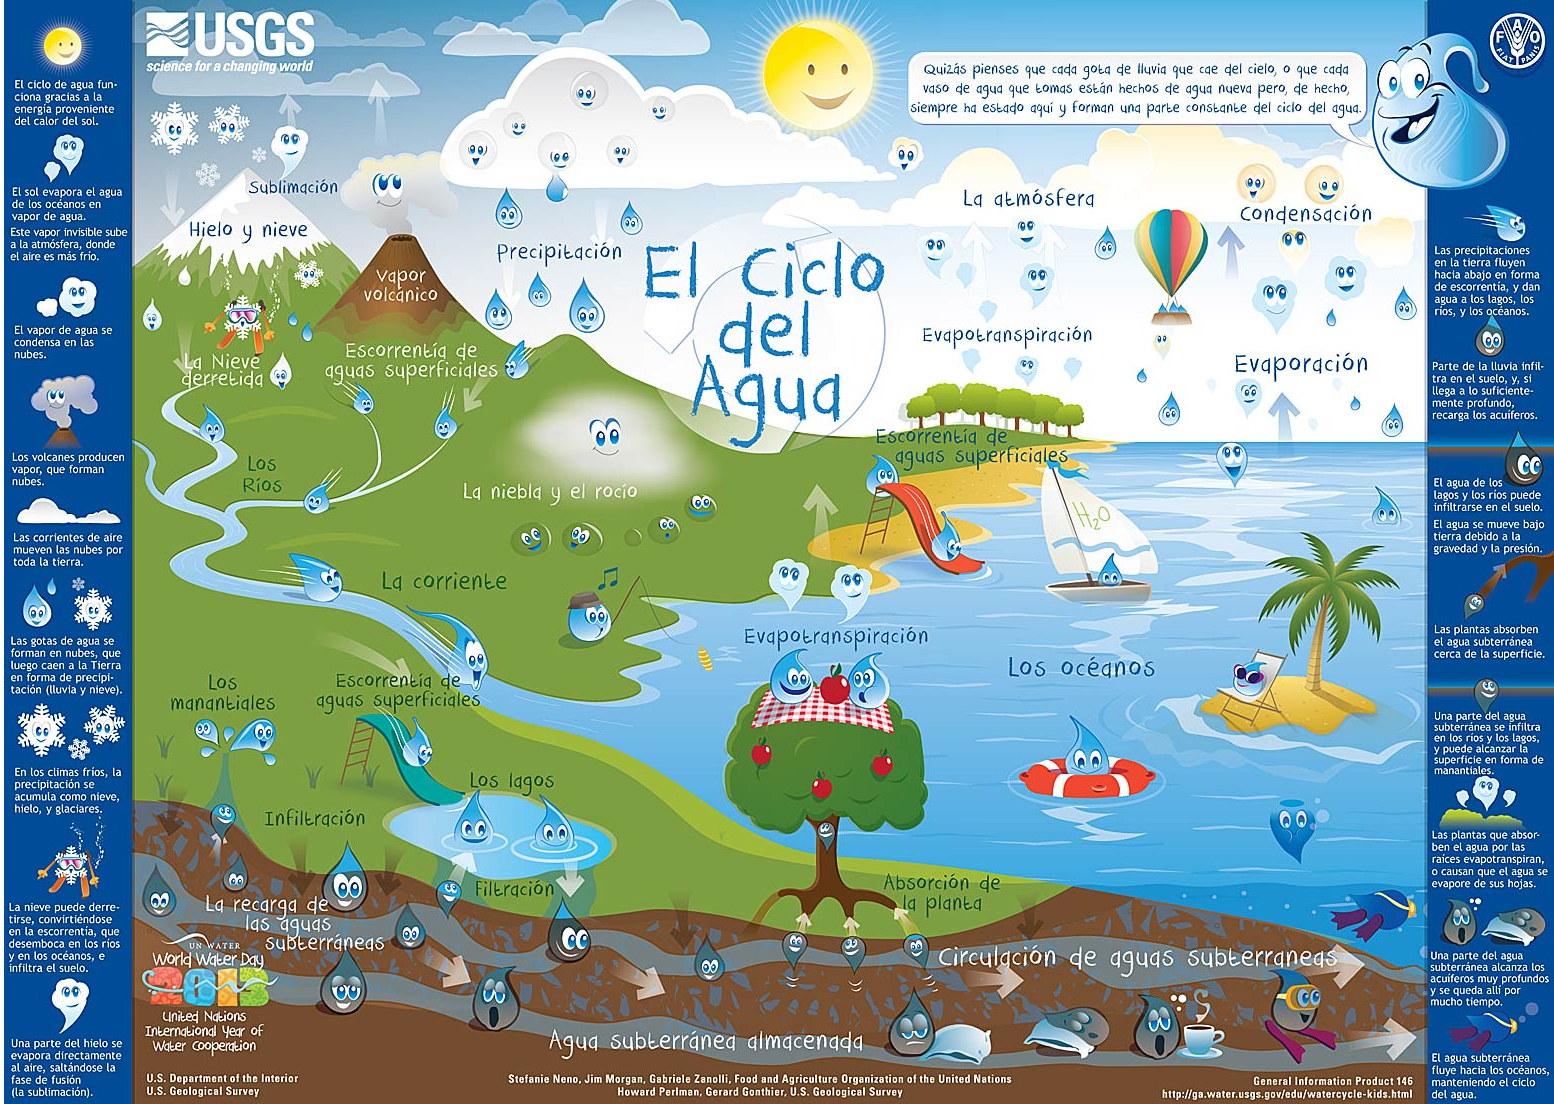 This diagram of the water cycle in Spanish is an excellent resource for learning about water.